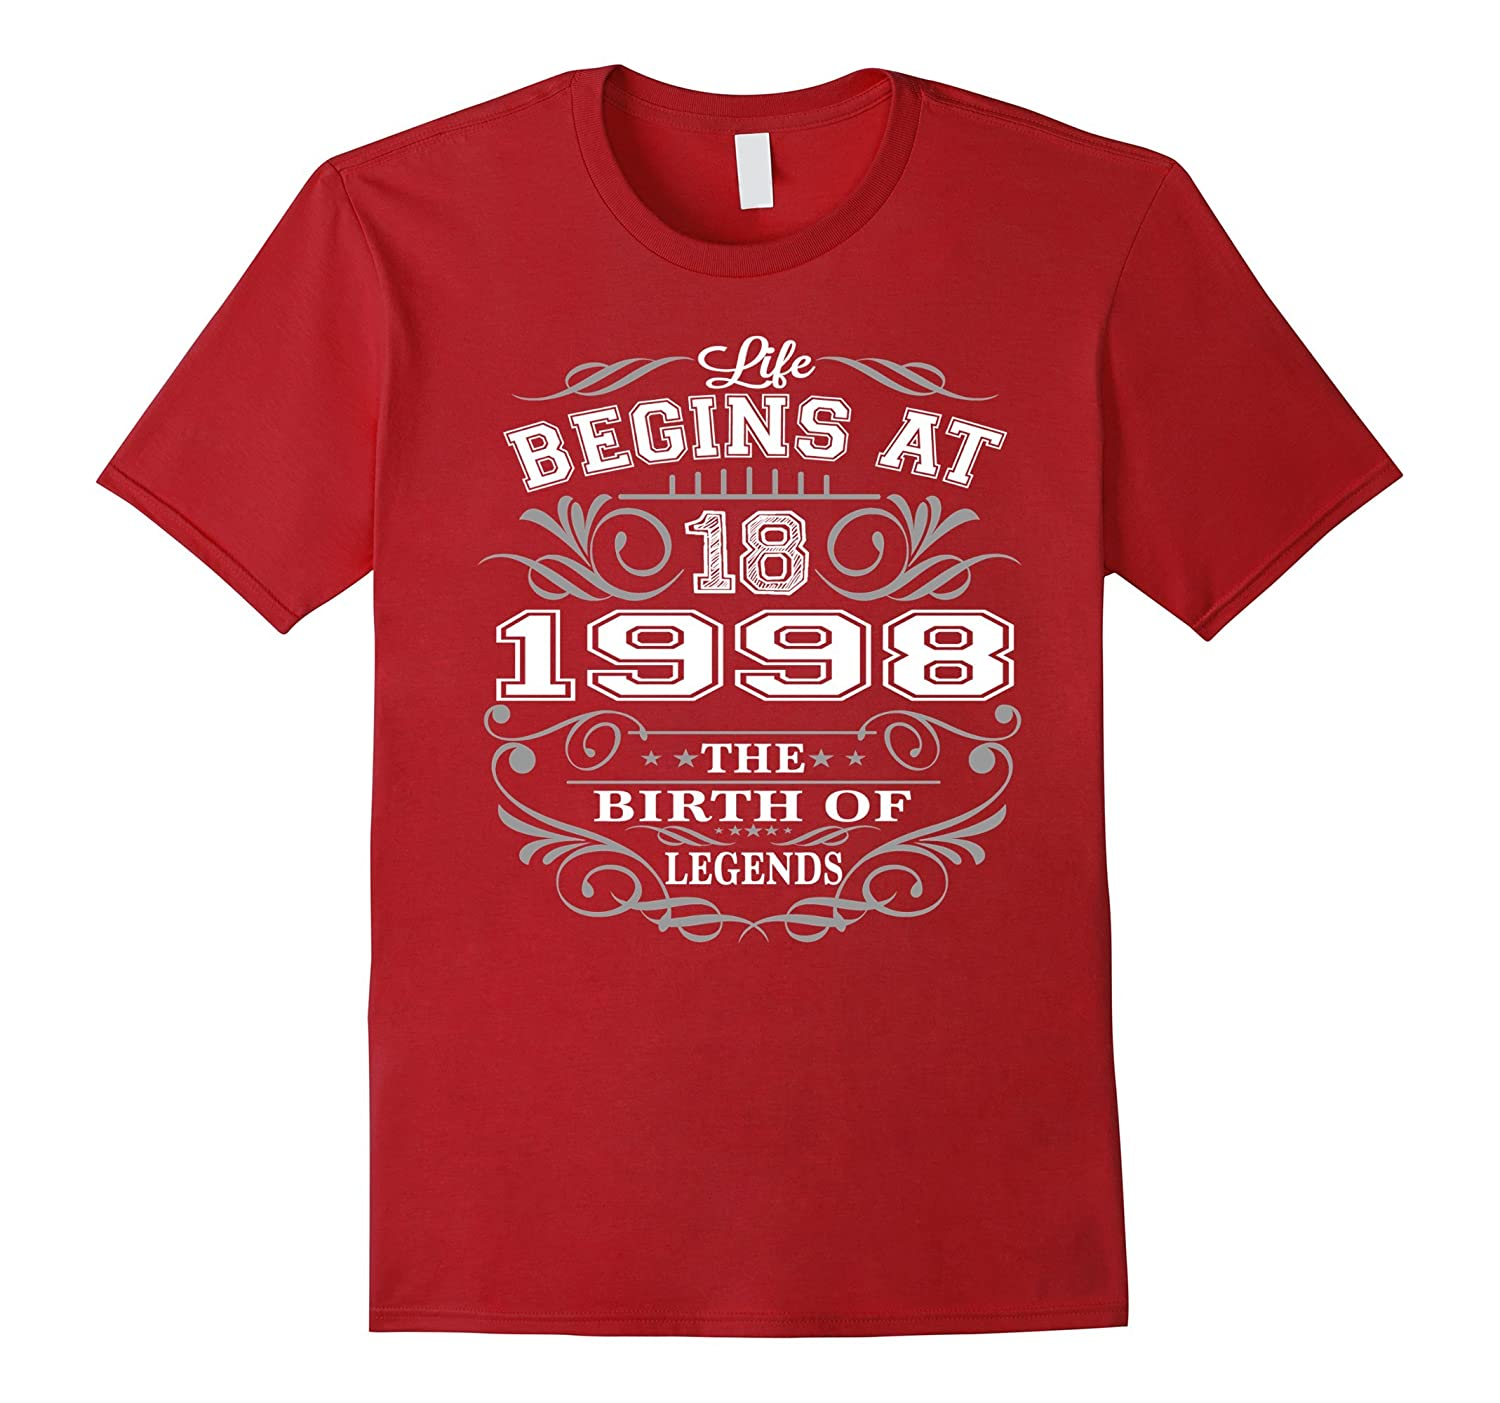 18 year old birthday gifts Life Begins at 18 1998 T Shirt-BN